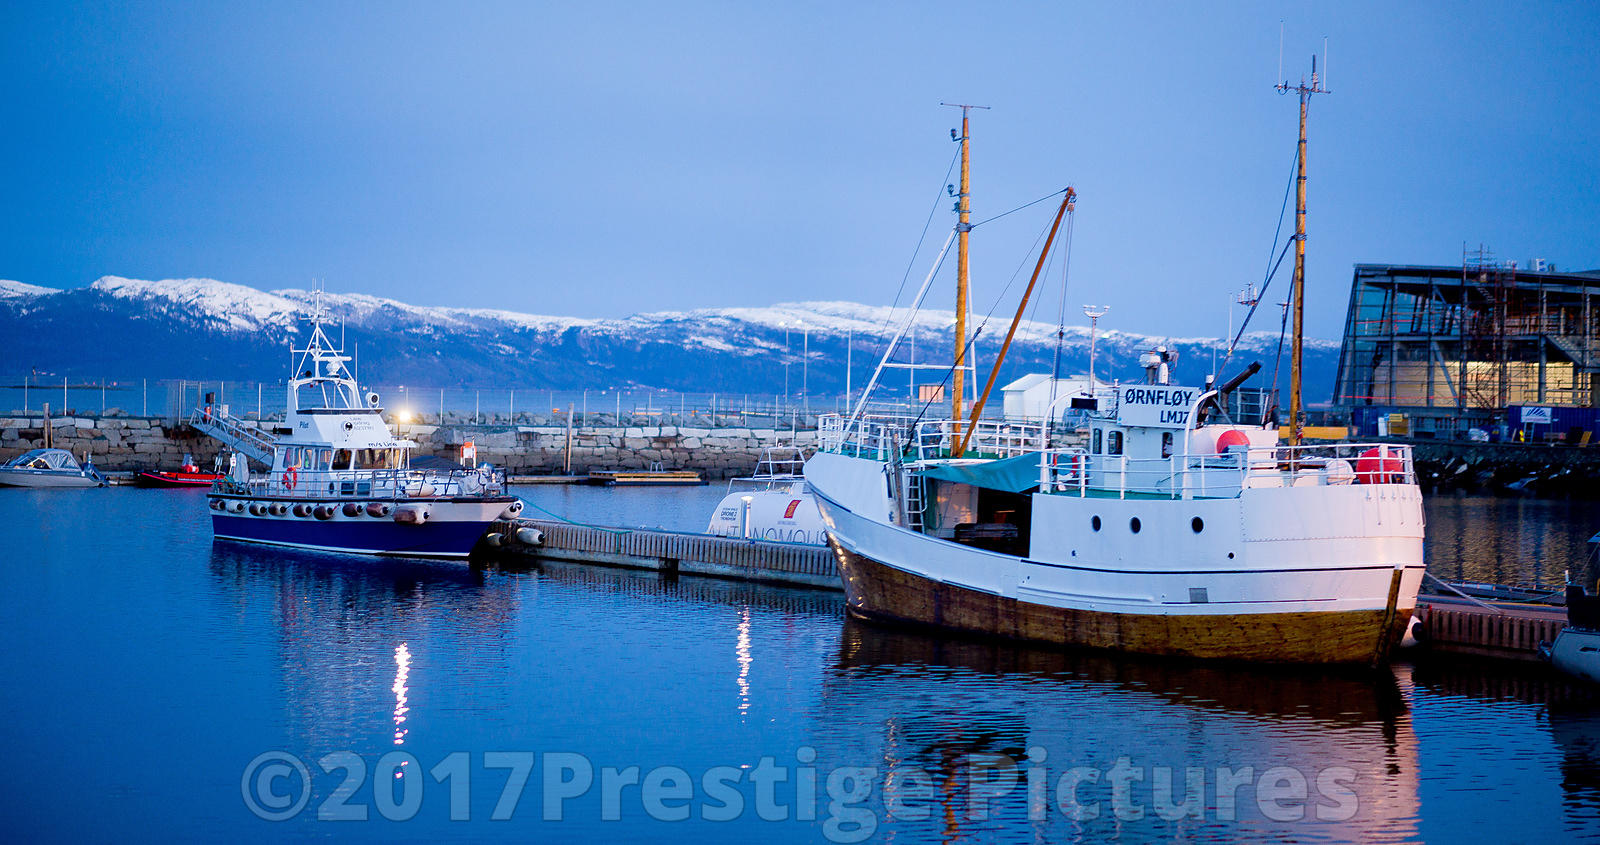 Boats in the Marina in Trondheim with snow Capped Mountains Behind - Norway royalty free stock photo library